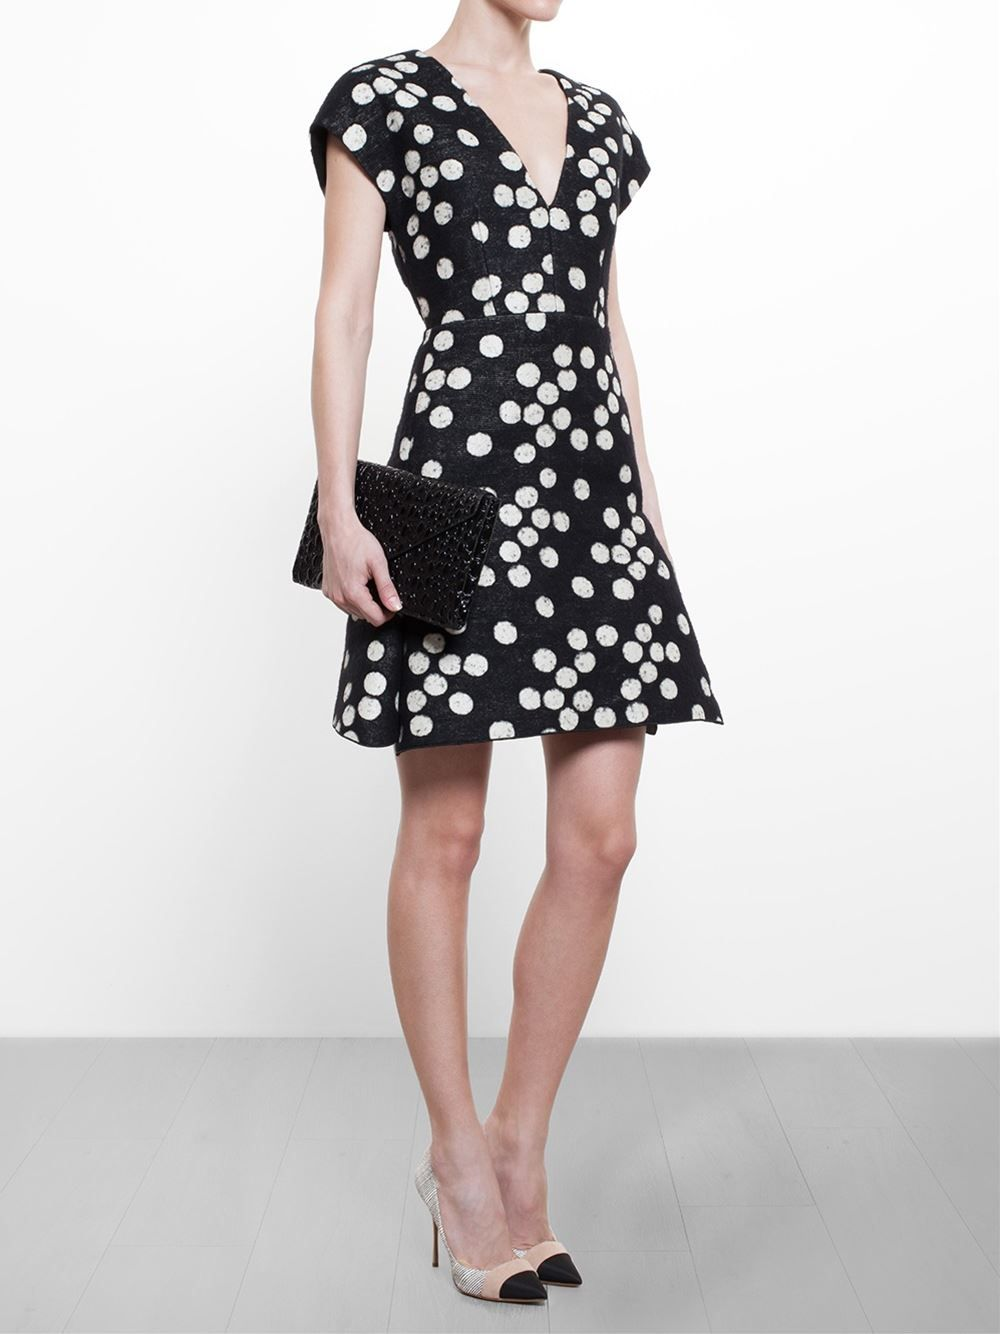 d80e883c67d Giambattista Valli Polka Dot Dress - Browns - Farfetch.com ...